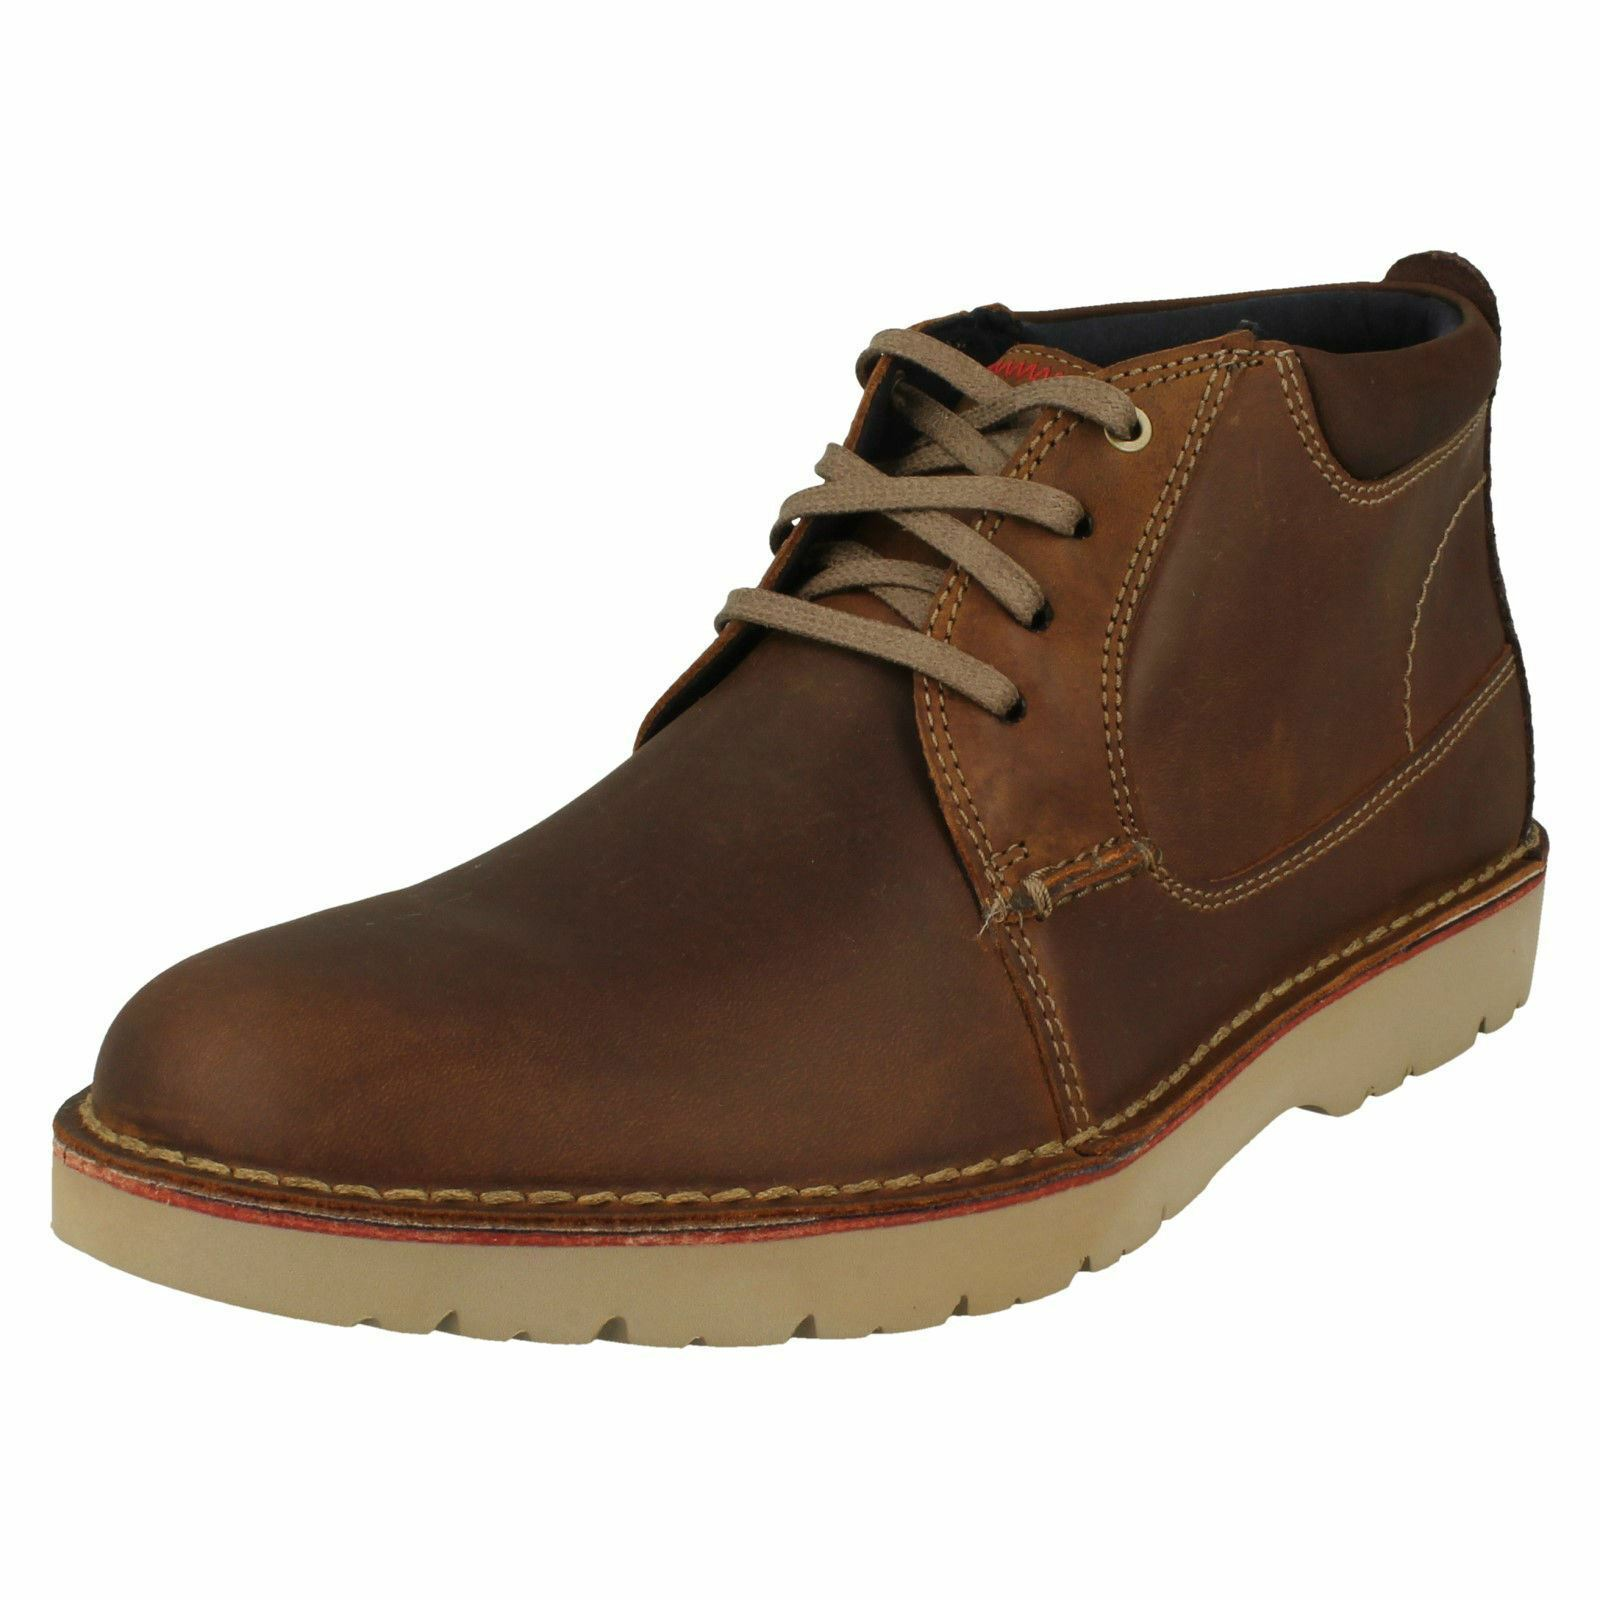 Mens Clarks Casual Lace Up Boots Vargo Mid